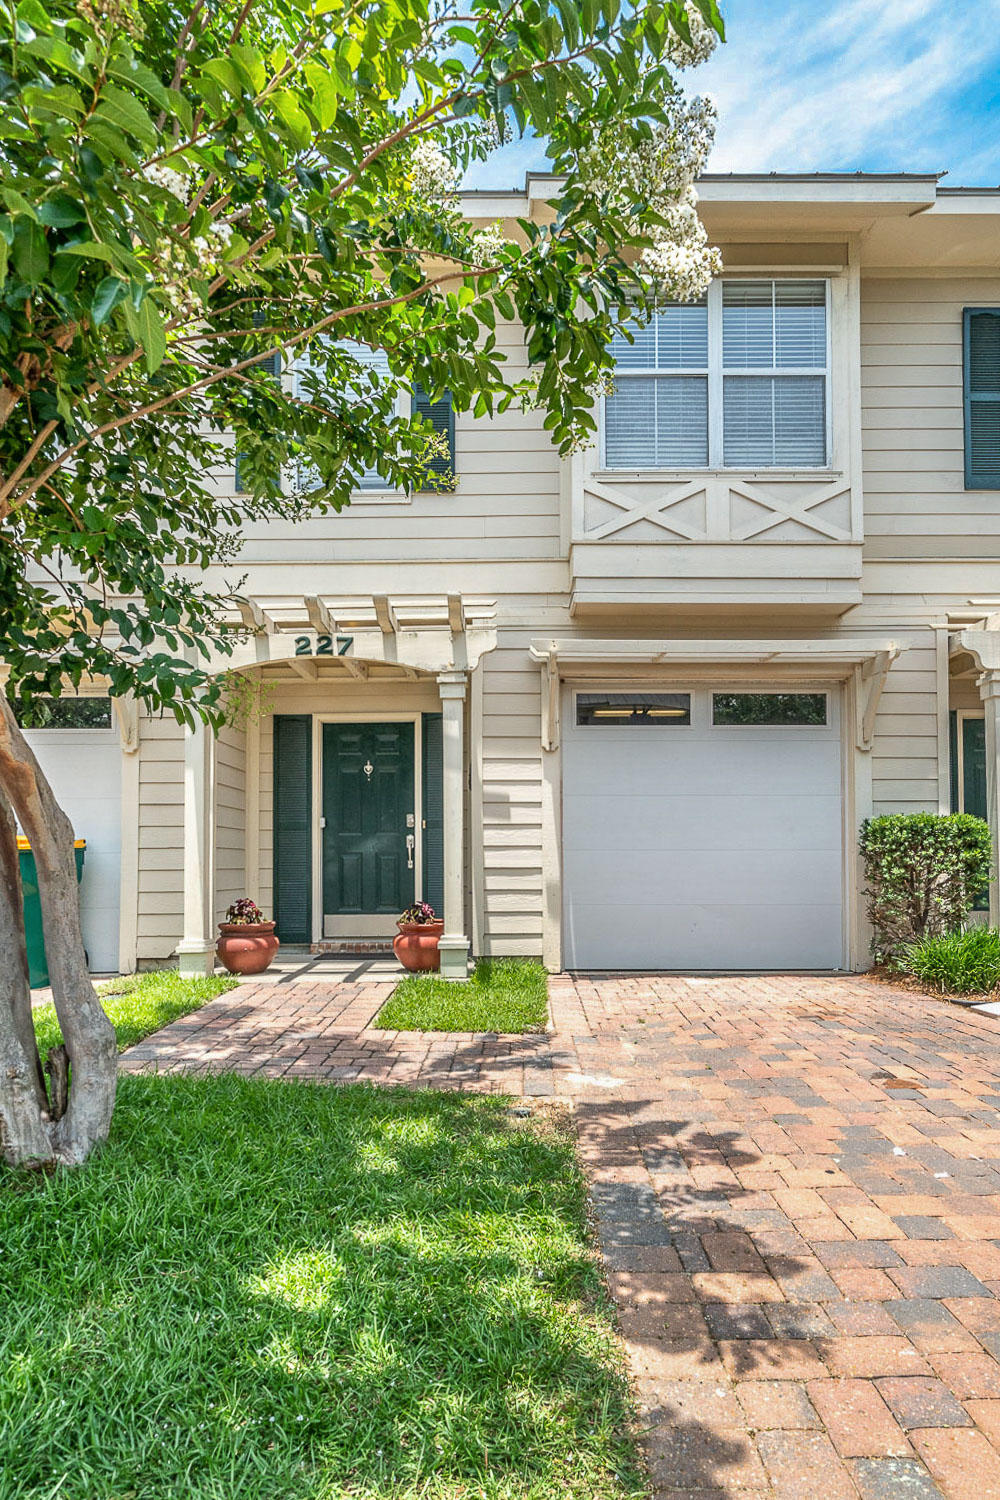 Destin's Premier Town Homes, Old Bay Village is located in the heart of Destin minutes from the beach! This 3 bedroom 3 bath home offers granite countertops, stainless steel appliances and beautiful flooring throughout. The spacious living and dining space features beautiful crown molding. The second floor offers a large master suite boasting an oversized walk-in closet, as well as two guest bedrooms that share a bathroom. Washer and dryer hook ups are conveniently located on the second floor. All flooring was replaced in 2016 and new HVAC in 2018. The exterior is equally impressive with a metal roof, Hardee board siding and pavered driveway perfect for permanent living, secondary home or investment property.